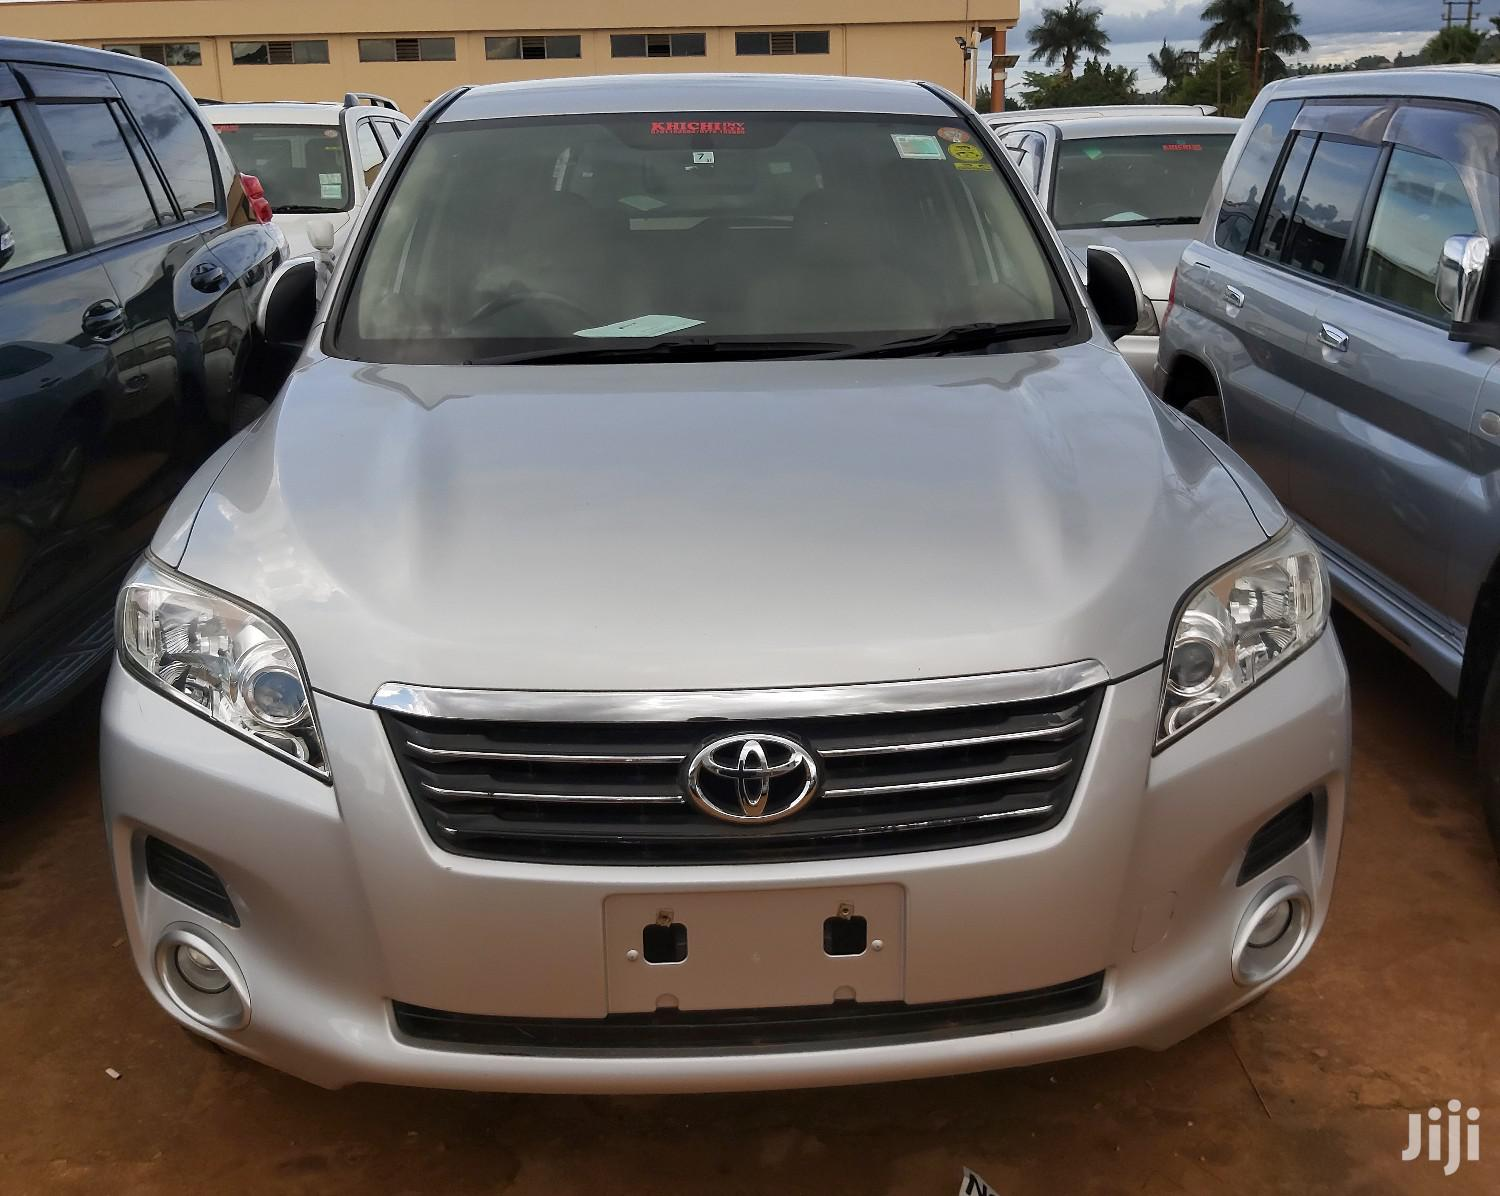 Archive: Toyota Vanguard 2008 Silver